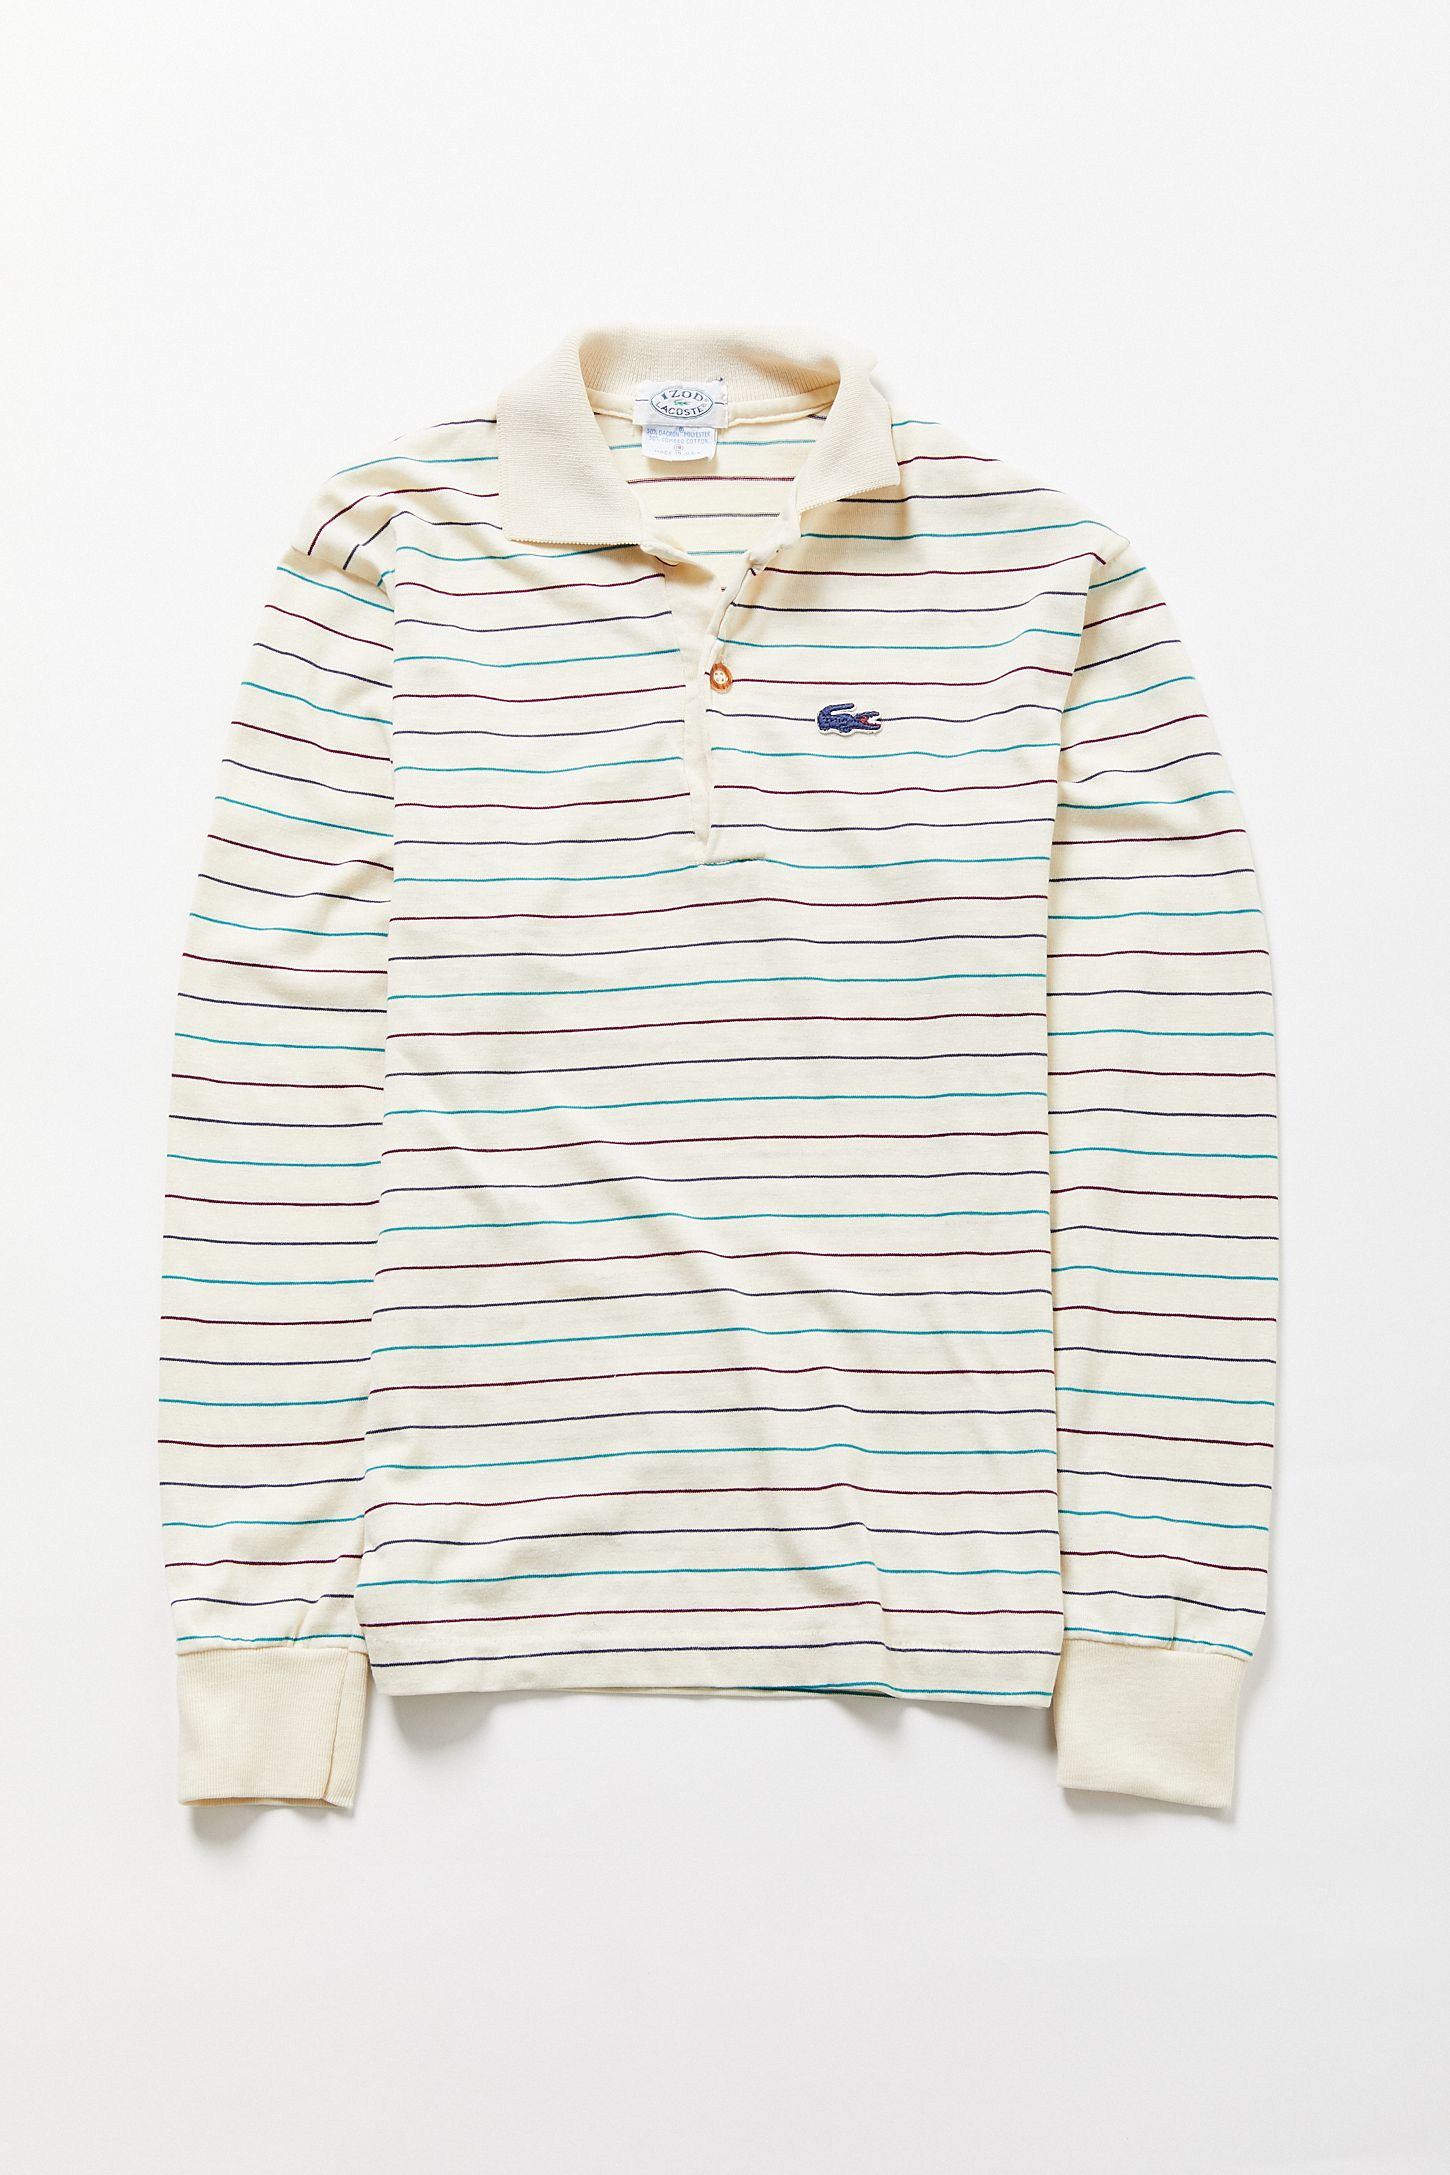 8a683638 Vintage Lacoste Long Sleeve Striped Polo Shirt. Tap image to zoom. Hover to  zoom. Double Tap to Zoom